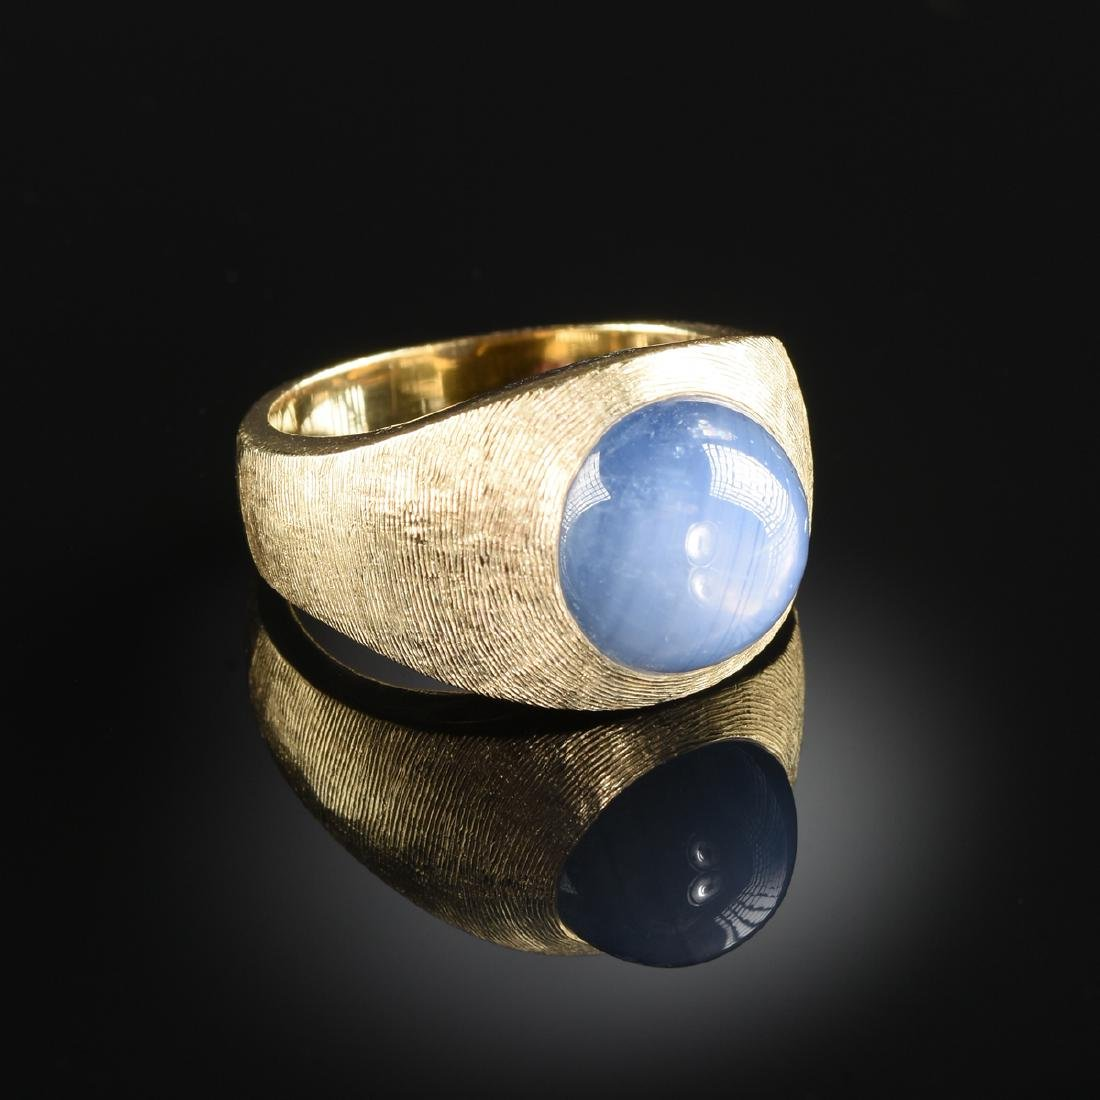 A 14K YELLOW GOLD AND GRAY/BLUE STAR SAPPHIRE